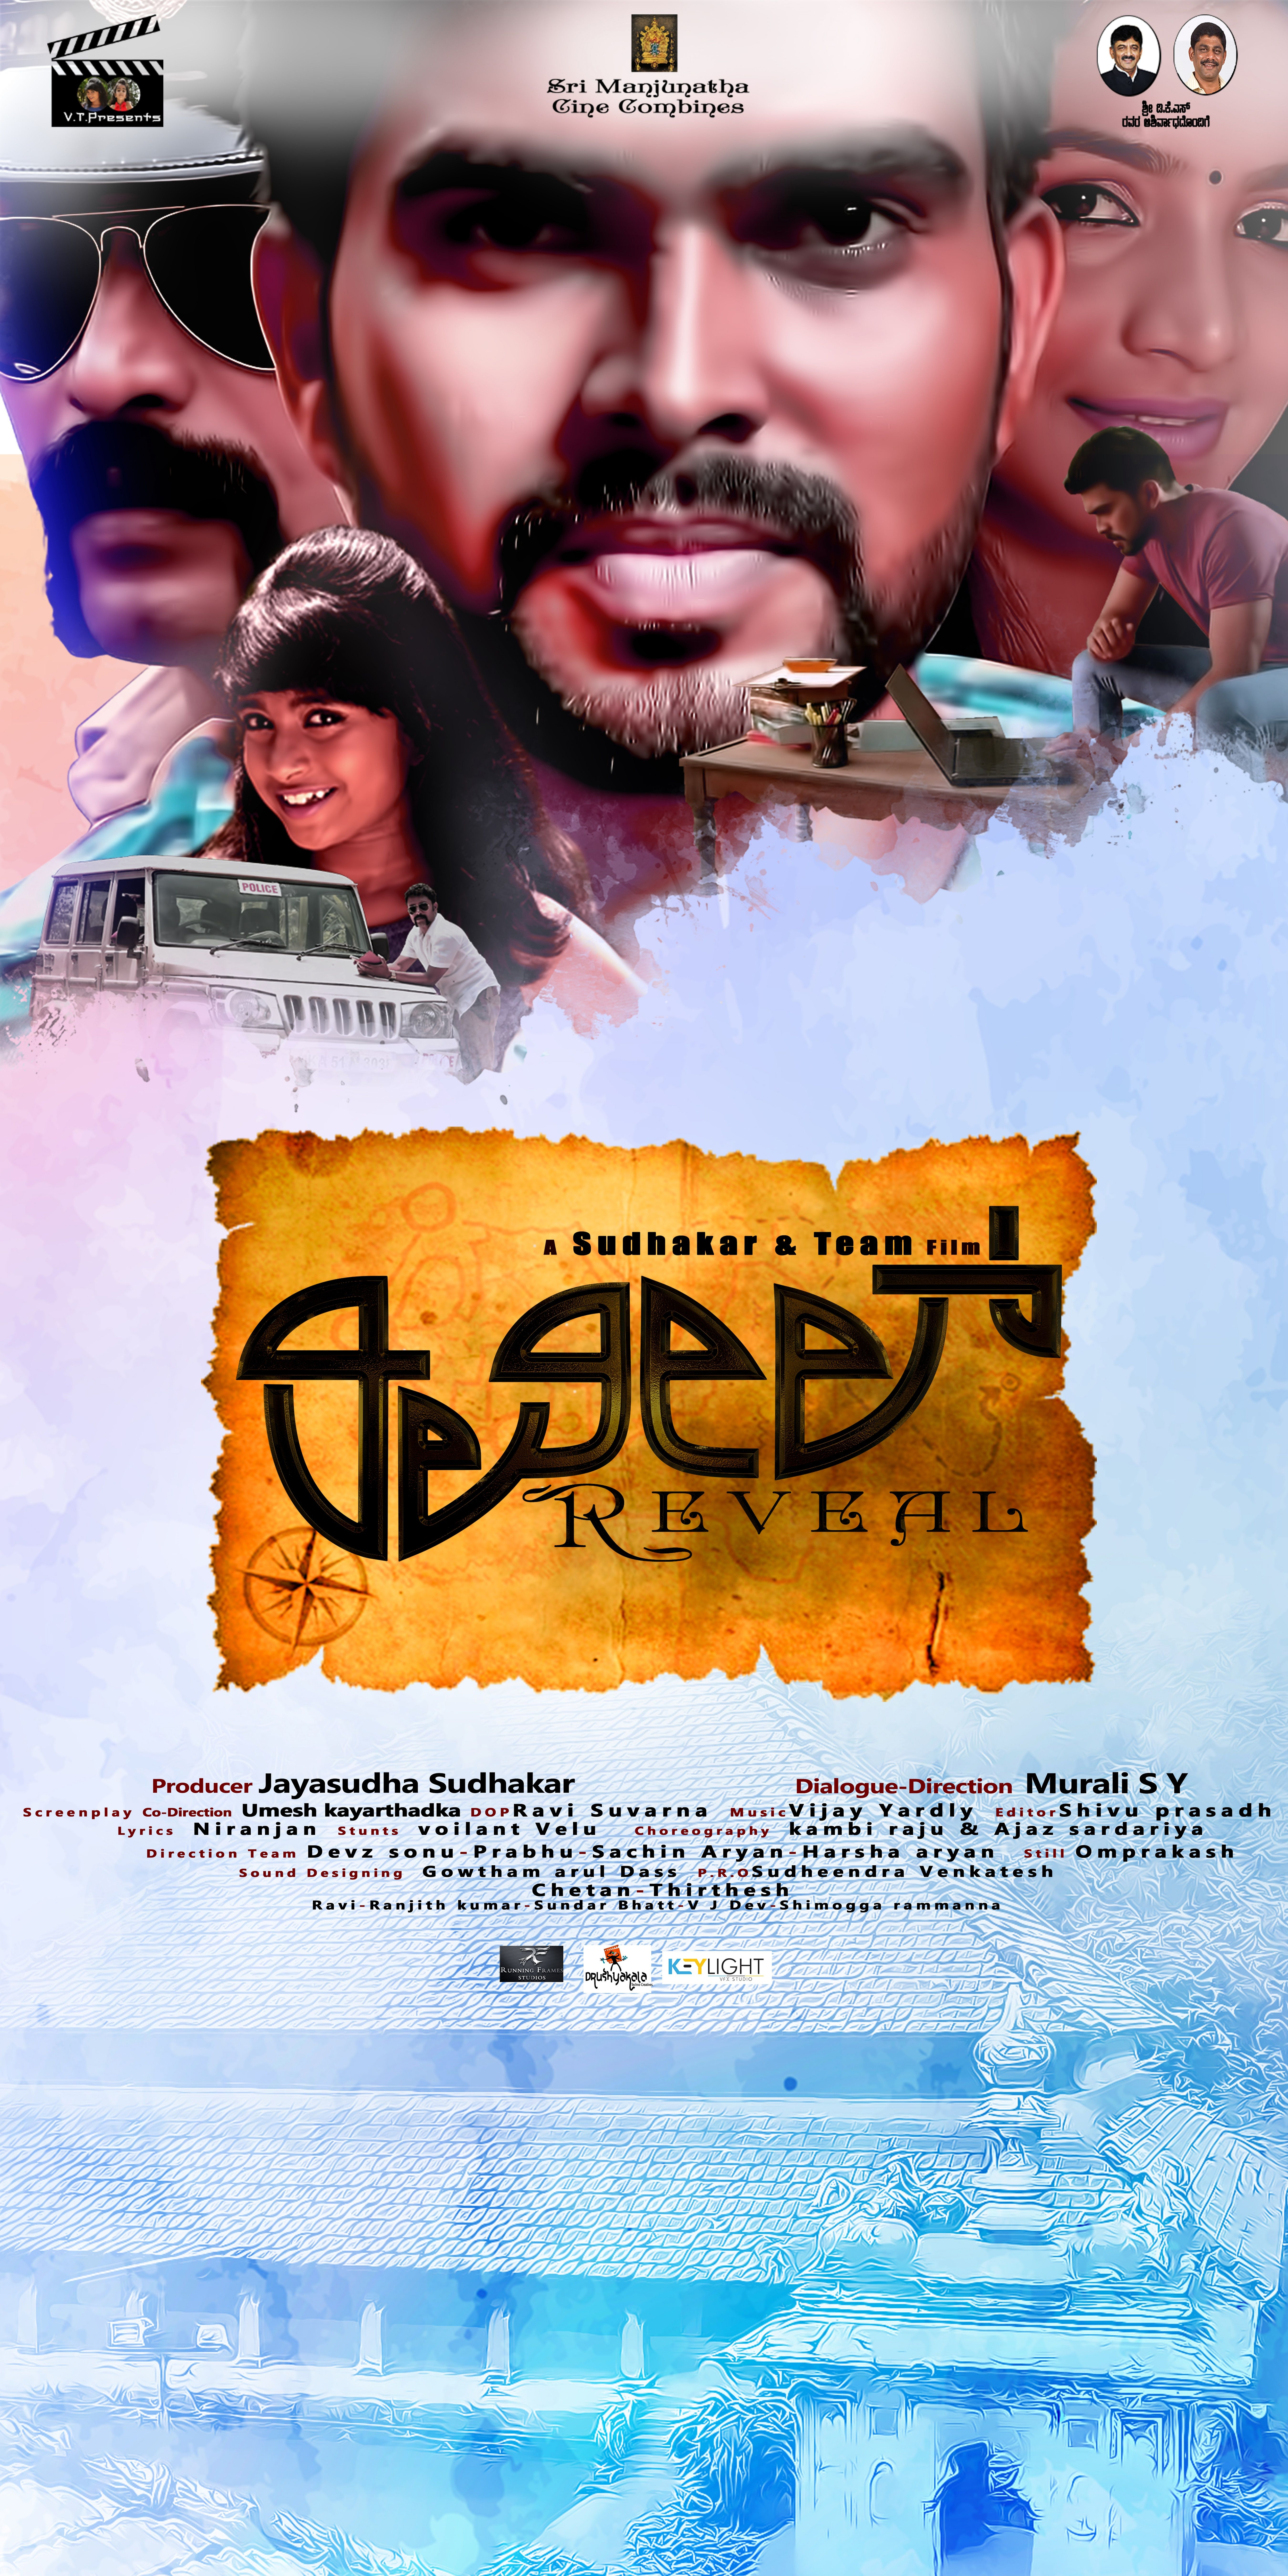 Pin By Kannada Movie Poster Designers On Kannada Movie Poster Designing Movie Posters Design Movie Posters Kannada Movies